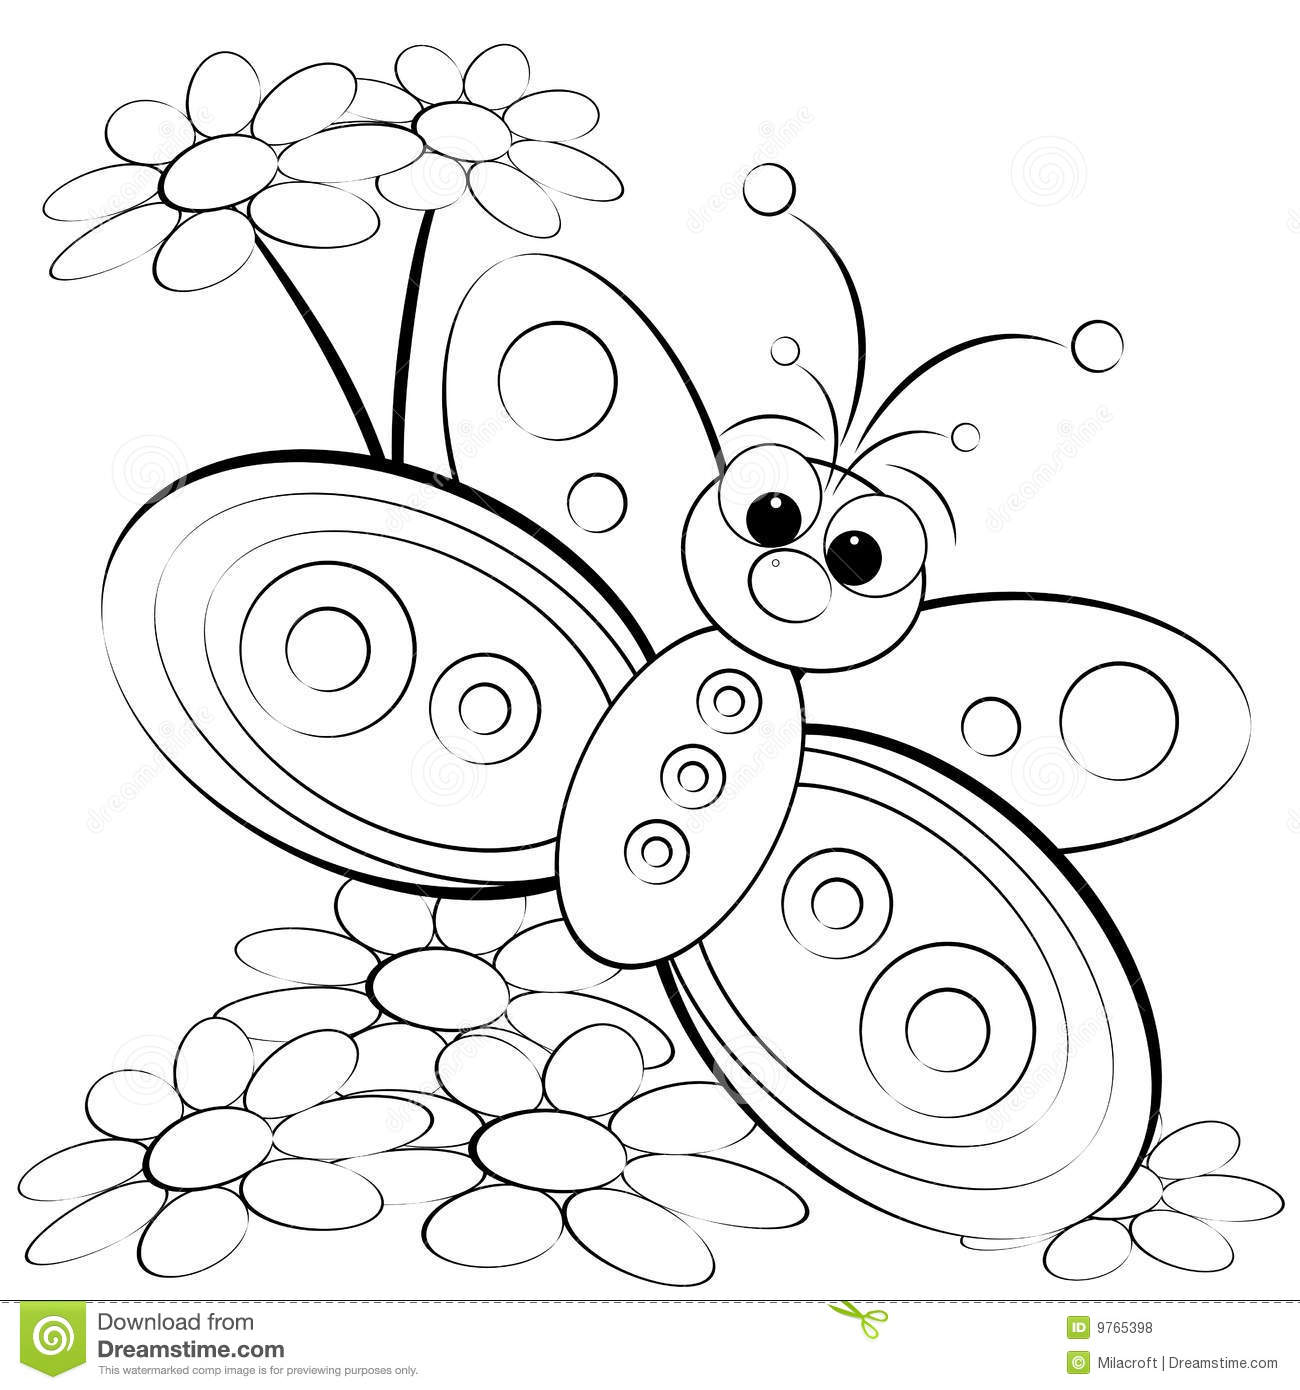 coloring page butterfly and daisy royalty free stock photos